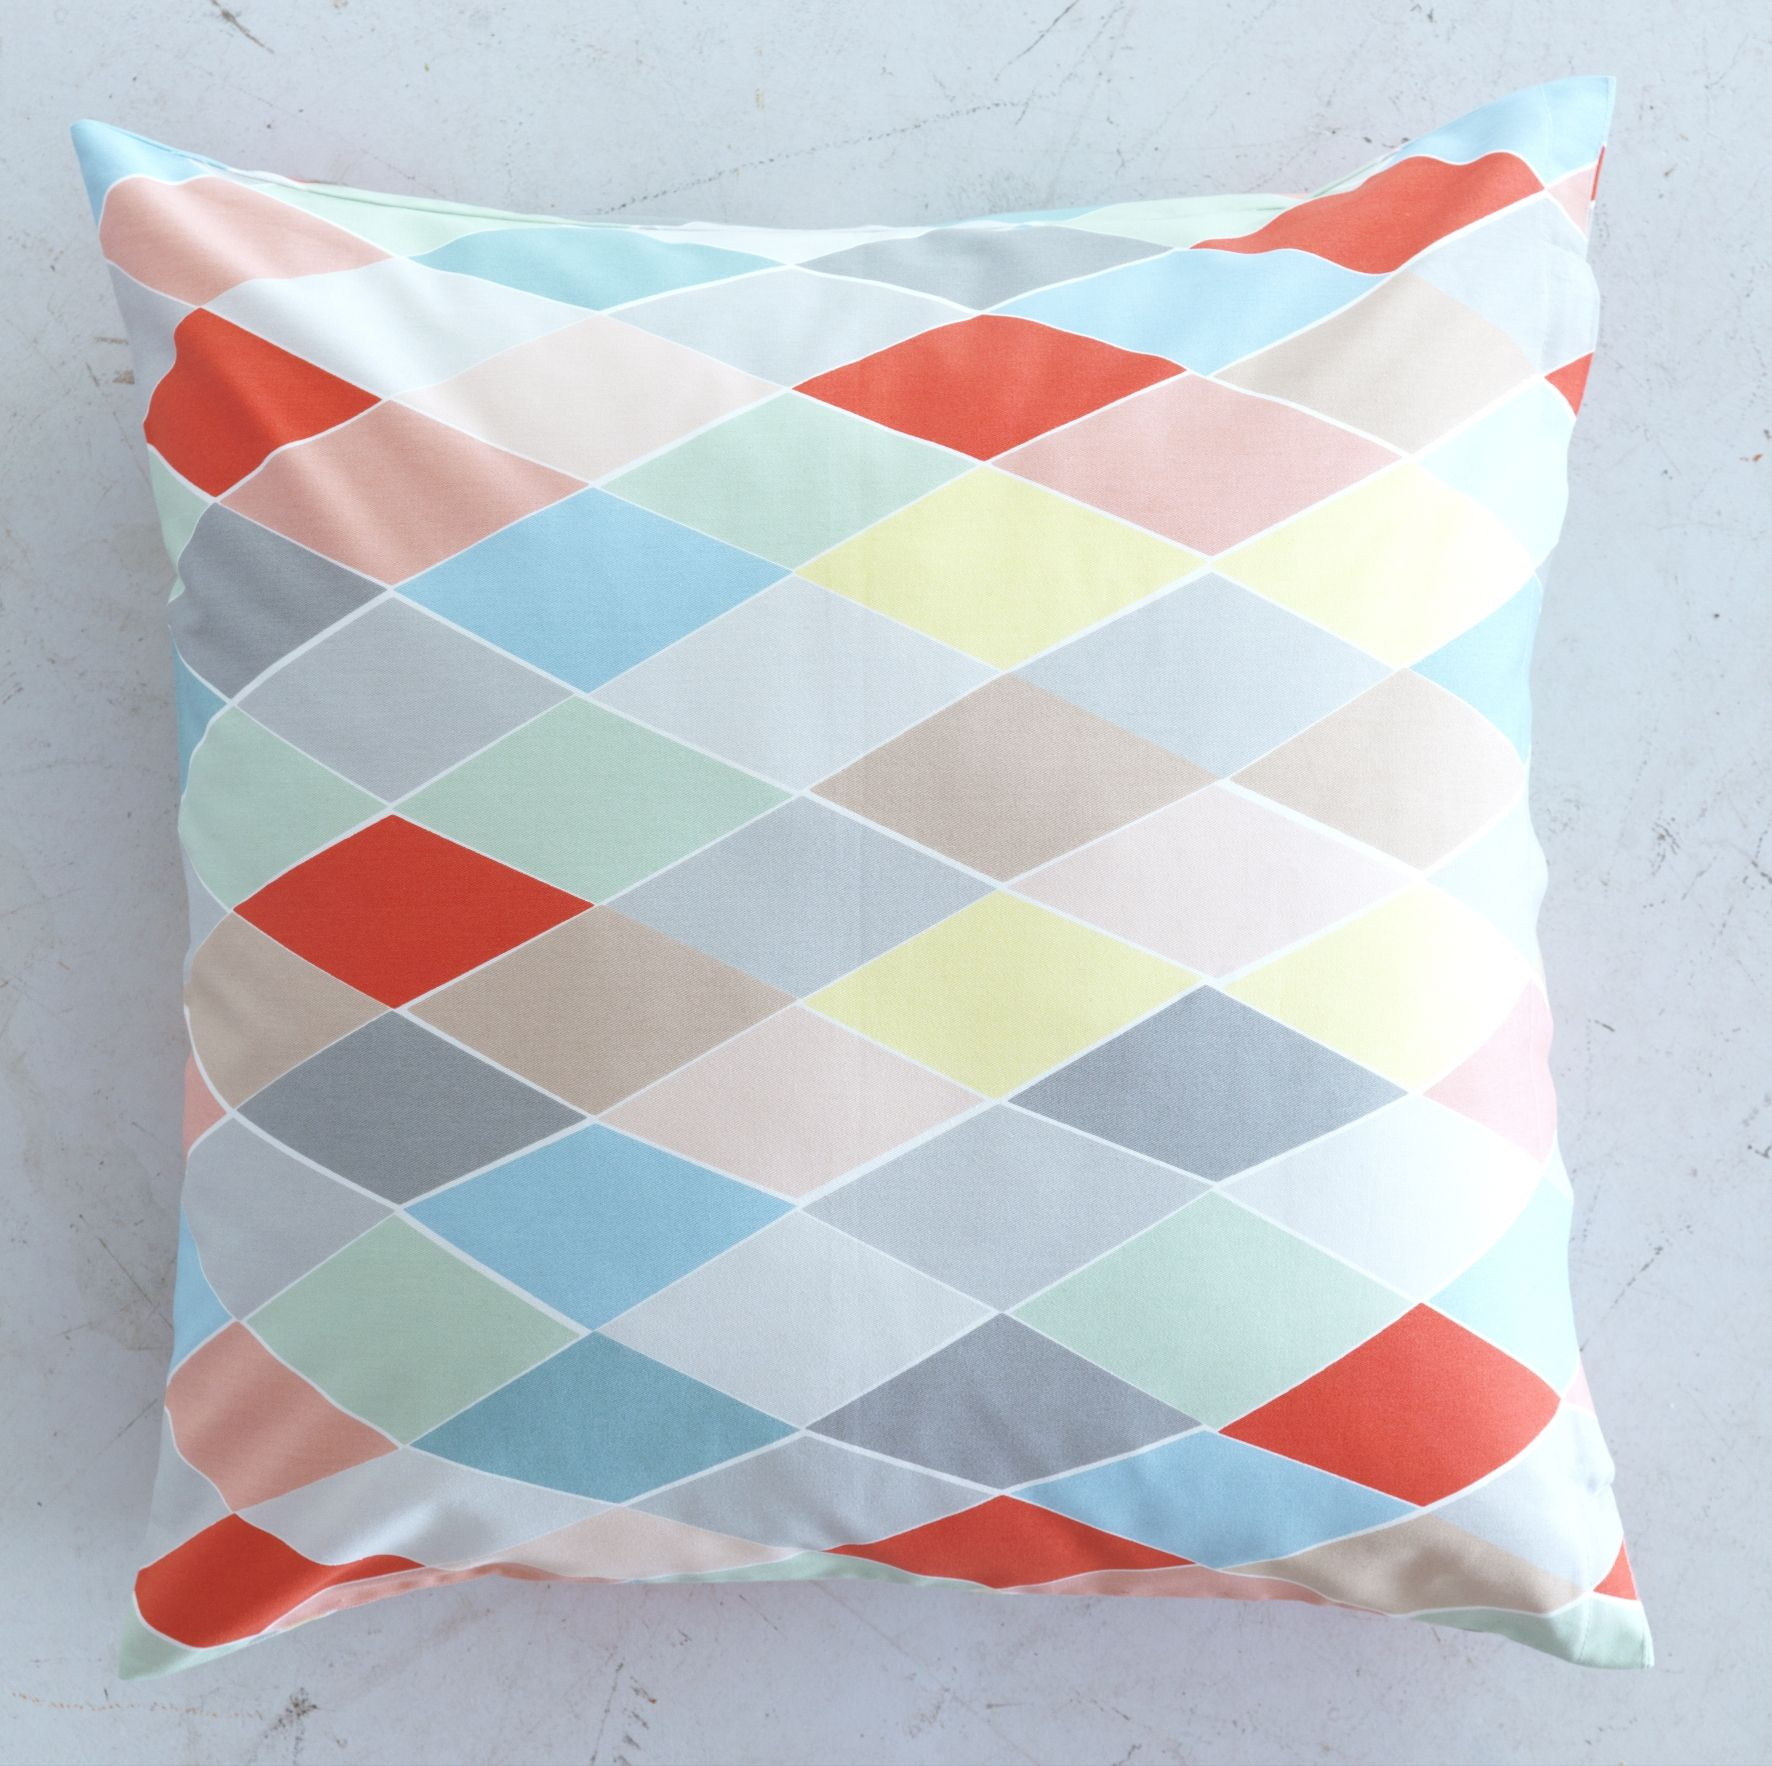 Limited edition brÅkig cushion cover available instore home